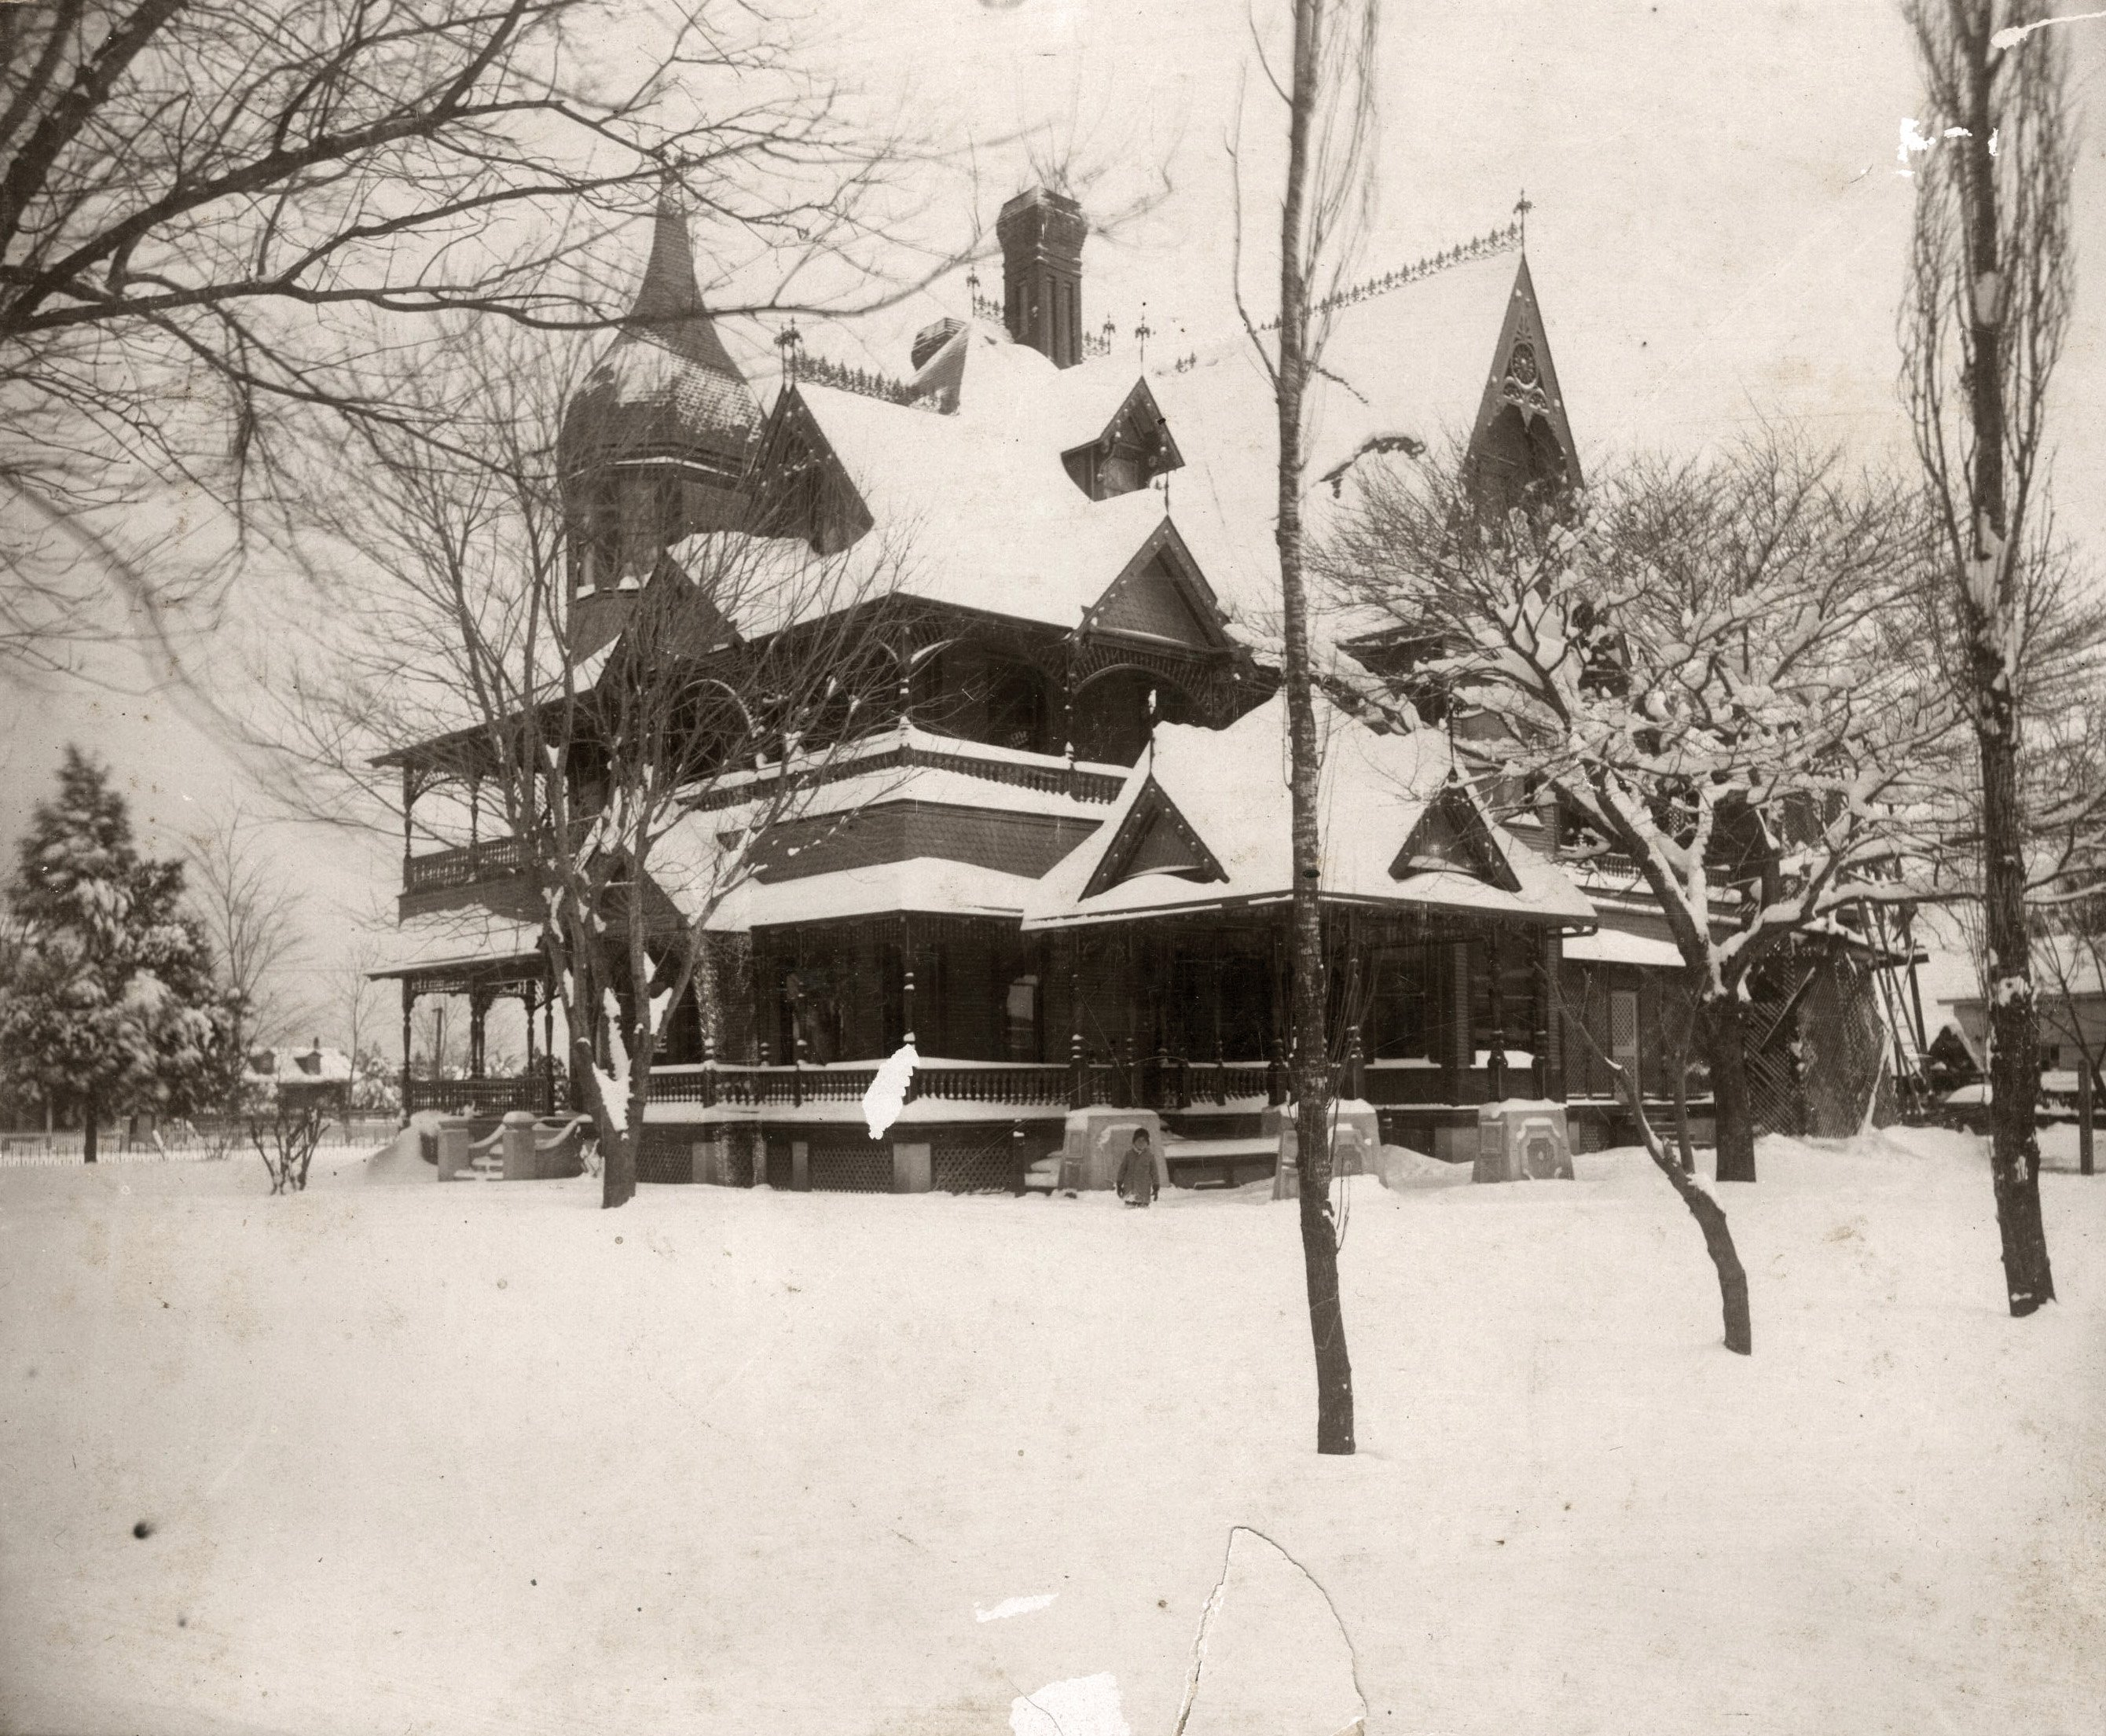 Earliest known photo of the Stark House, taken during the February snowstorm of 1895.